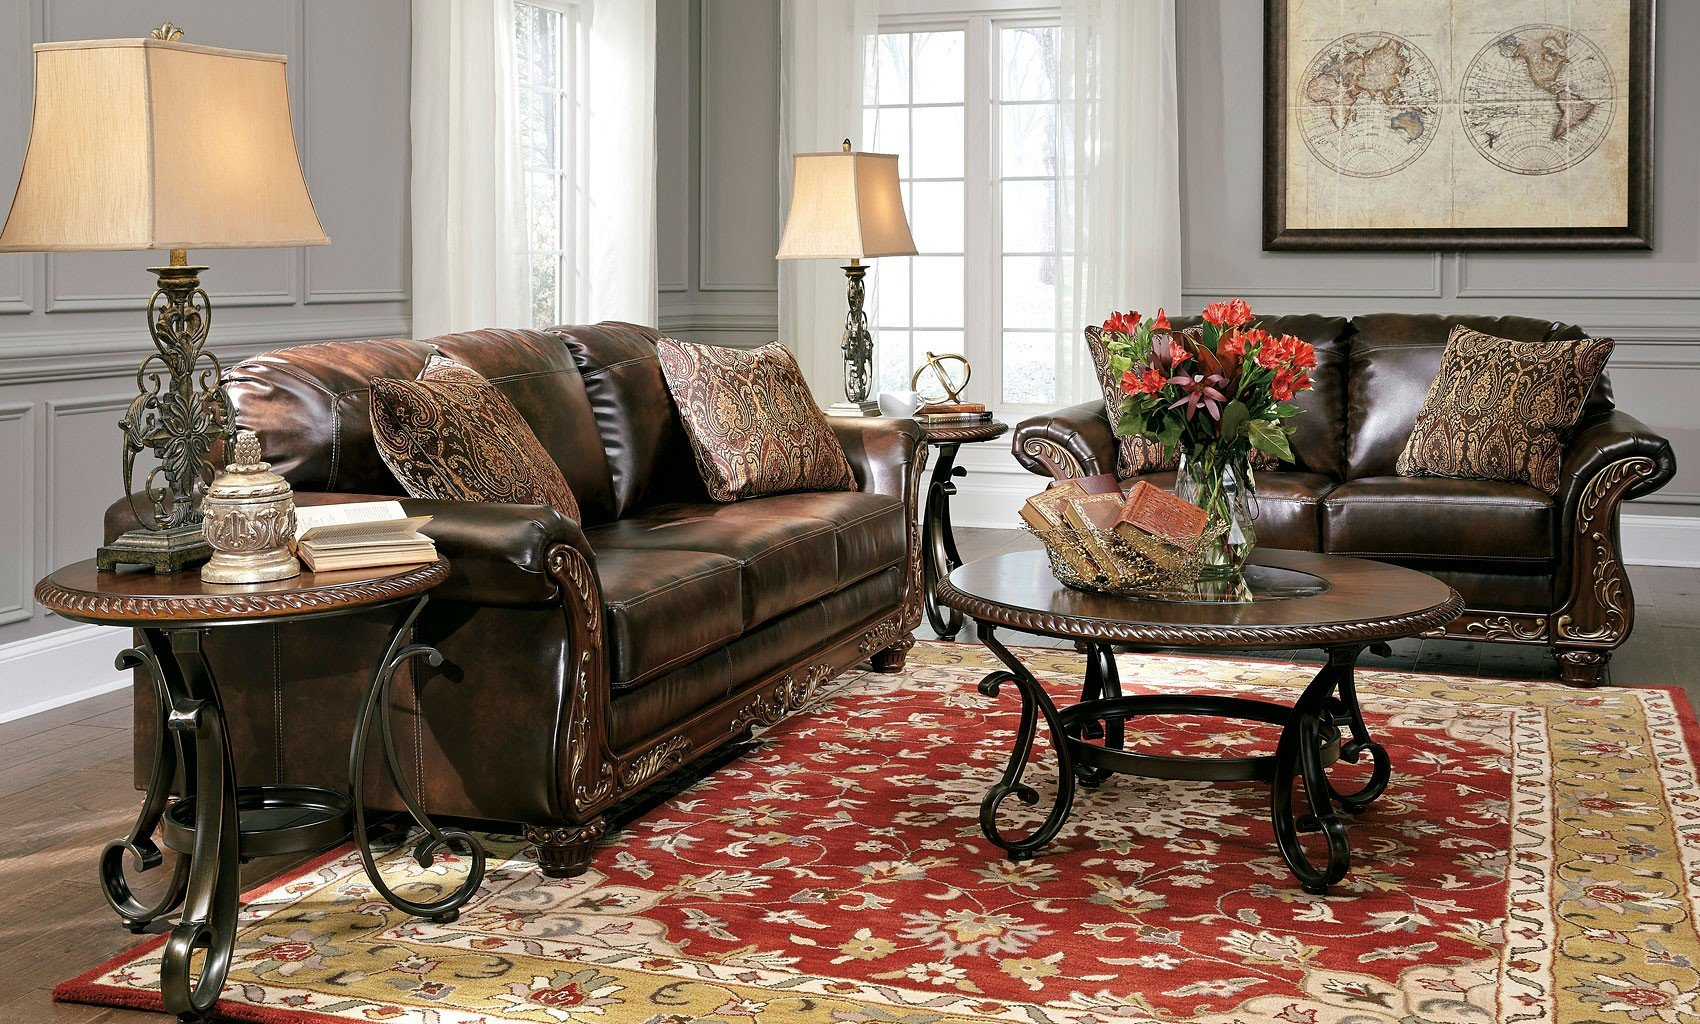 Vanceton Antique Living Room Set Signature Design, 1 Reviews ...